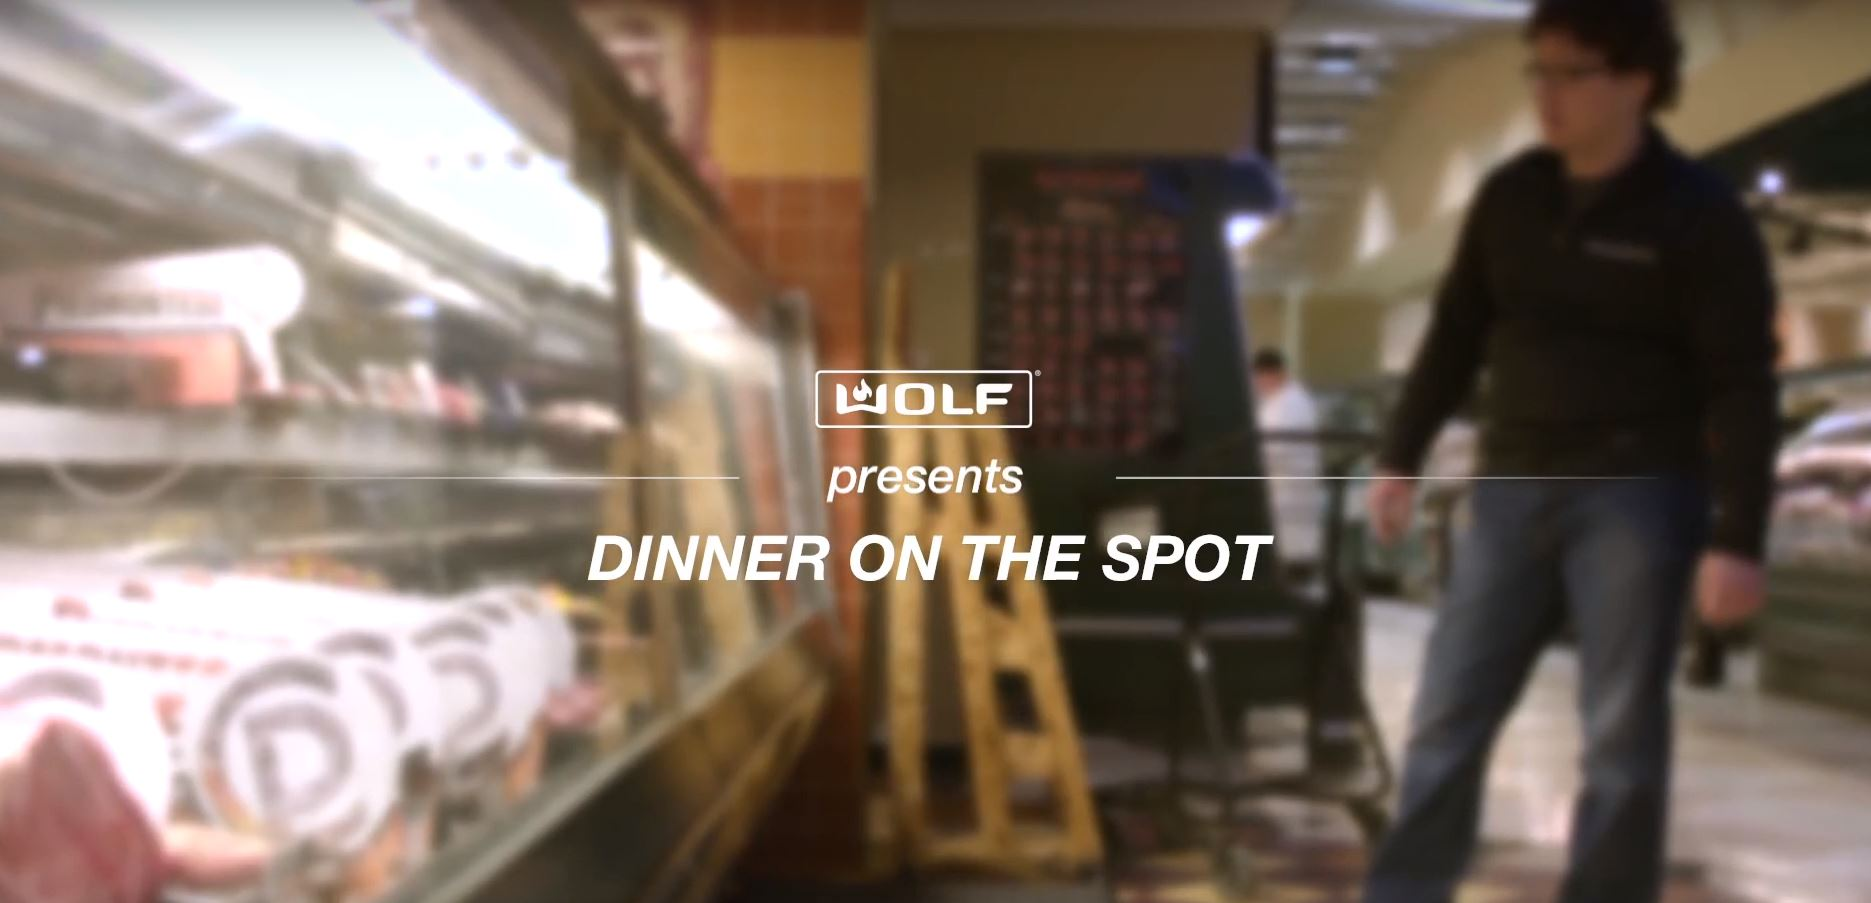 Wolf The Dinner Dilemma Solved Video